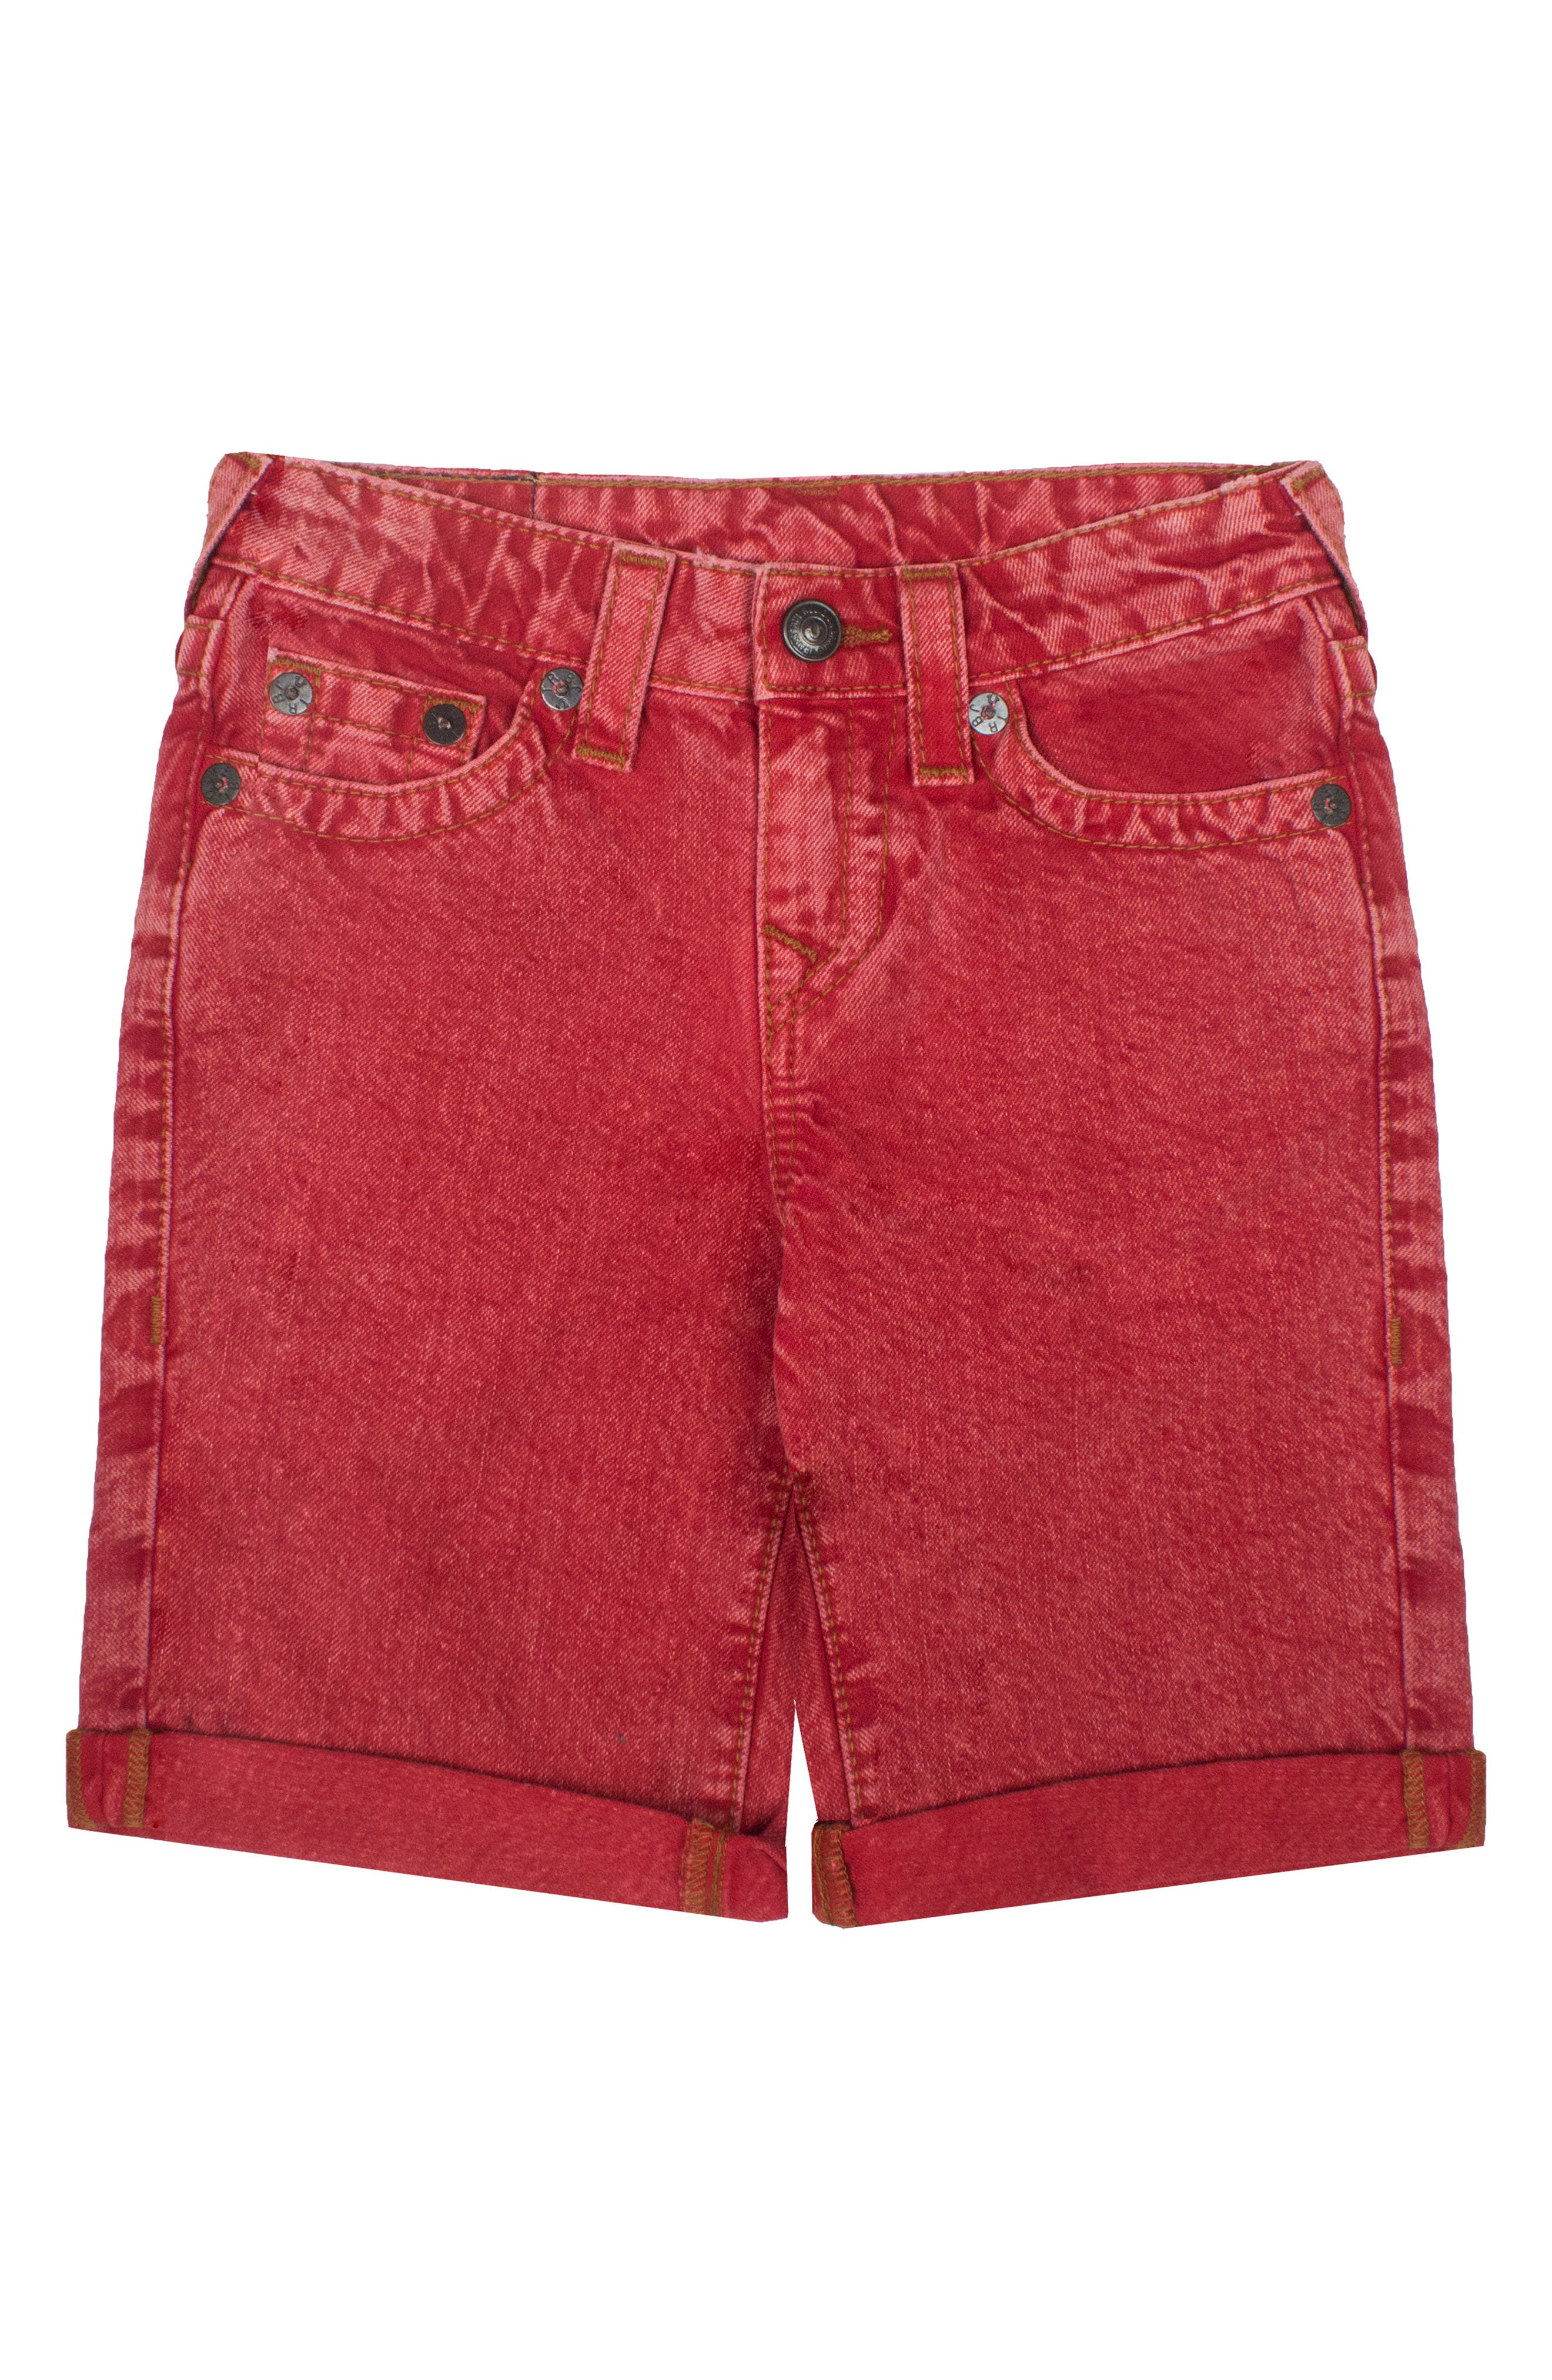 True Religion Brand Jeans Geno Denim Shorts (Toddler Boys & Little Boys)